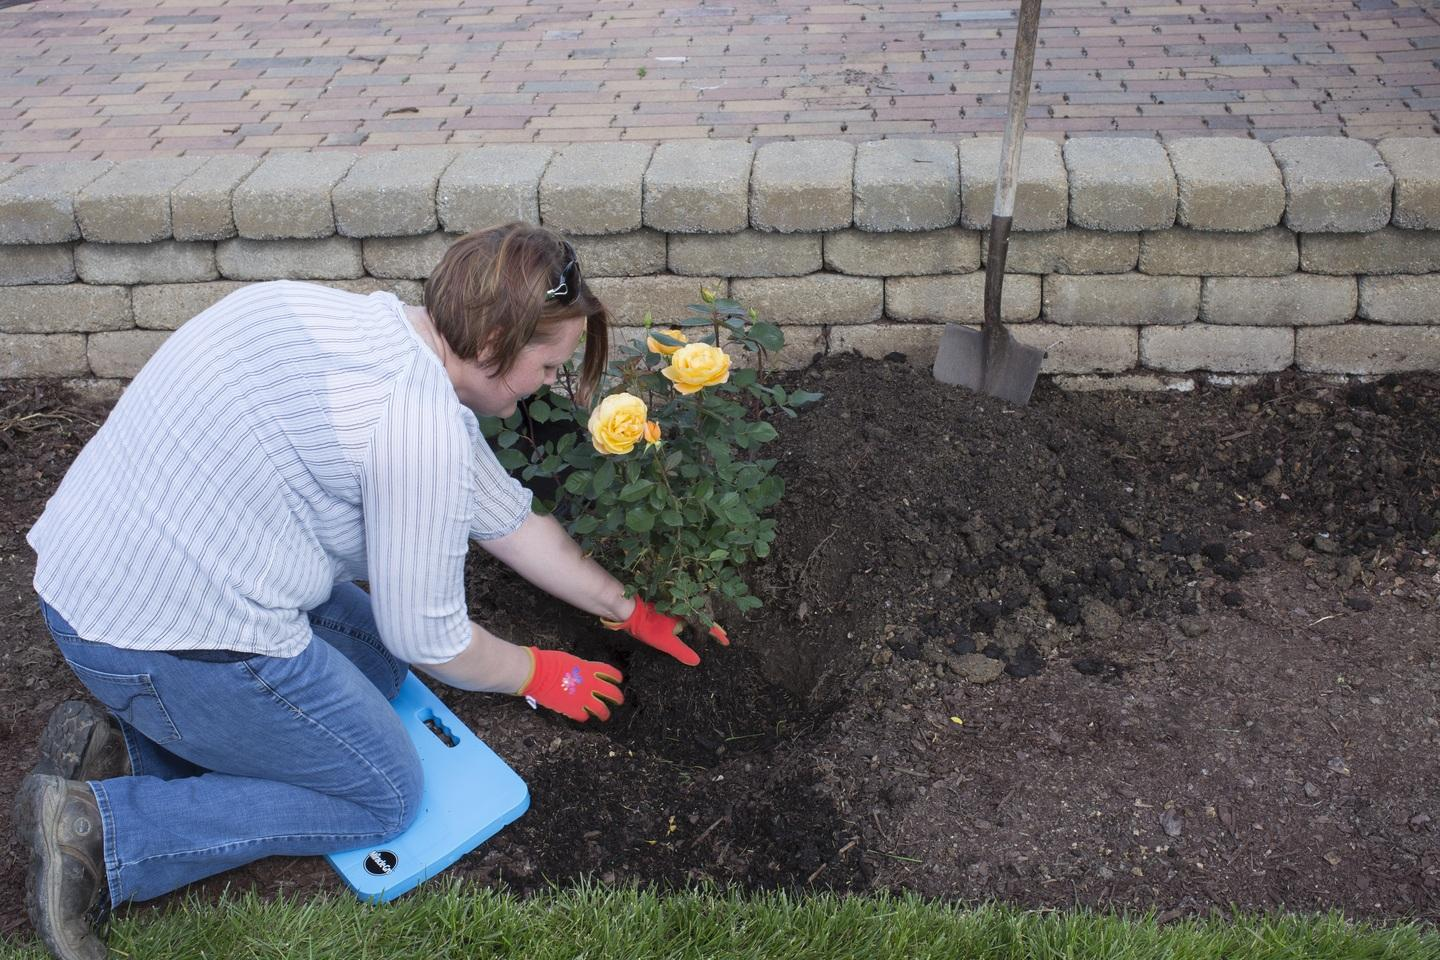 A woman uses a large shovel and knee pads to plant roses in her in-ground garden.